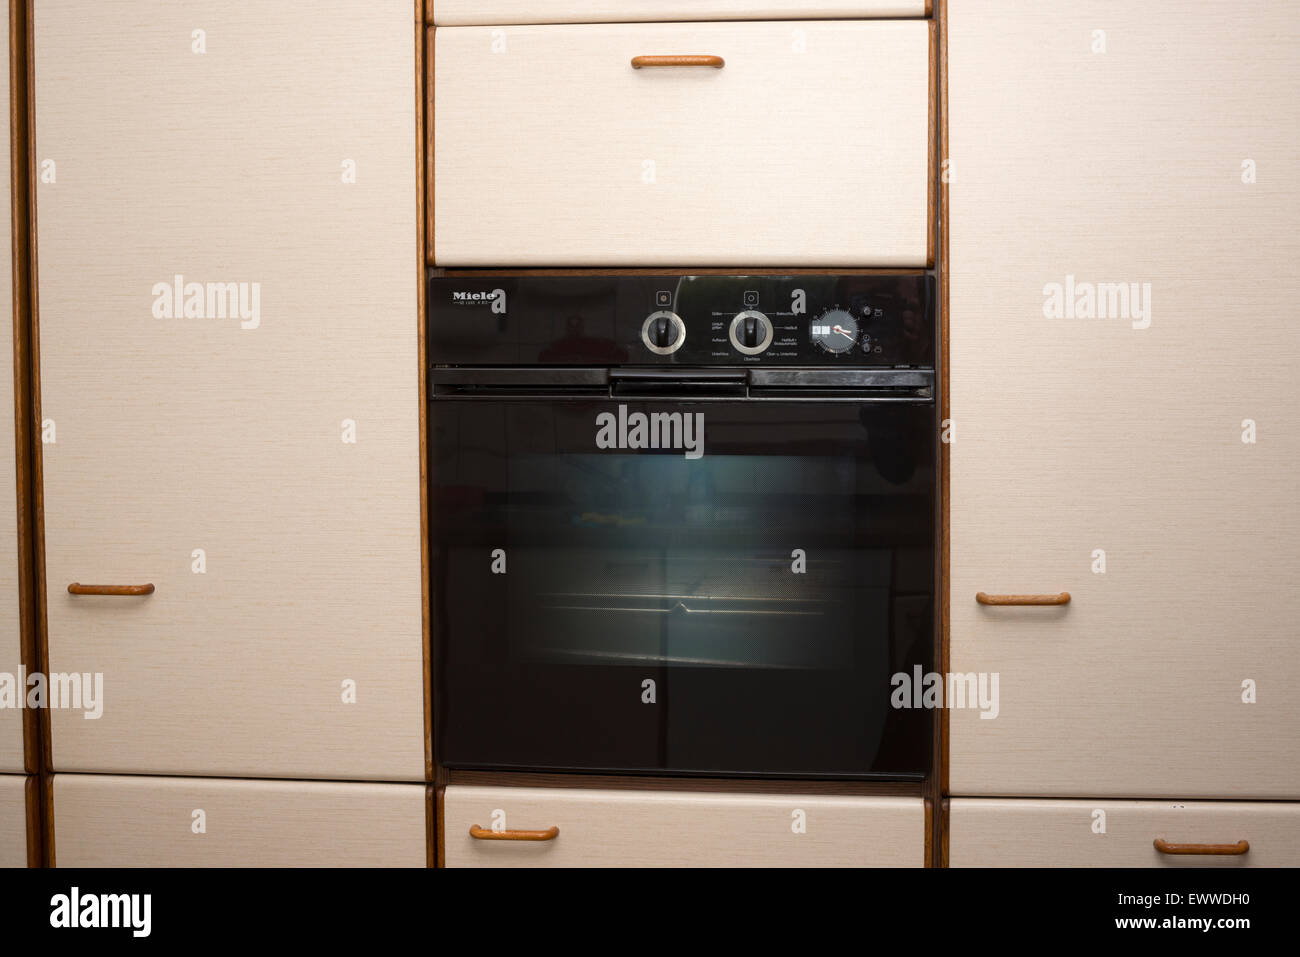 Miele De Luxe H 812 oven fitted into a 1980's kitchen - Stock Image